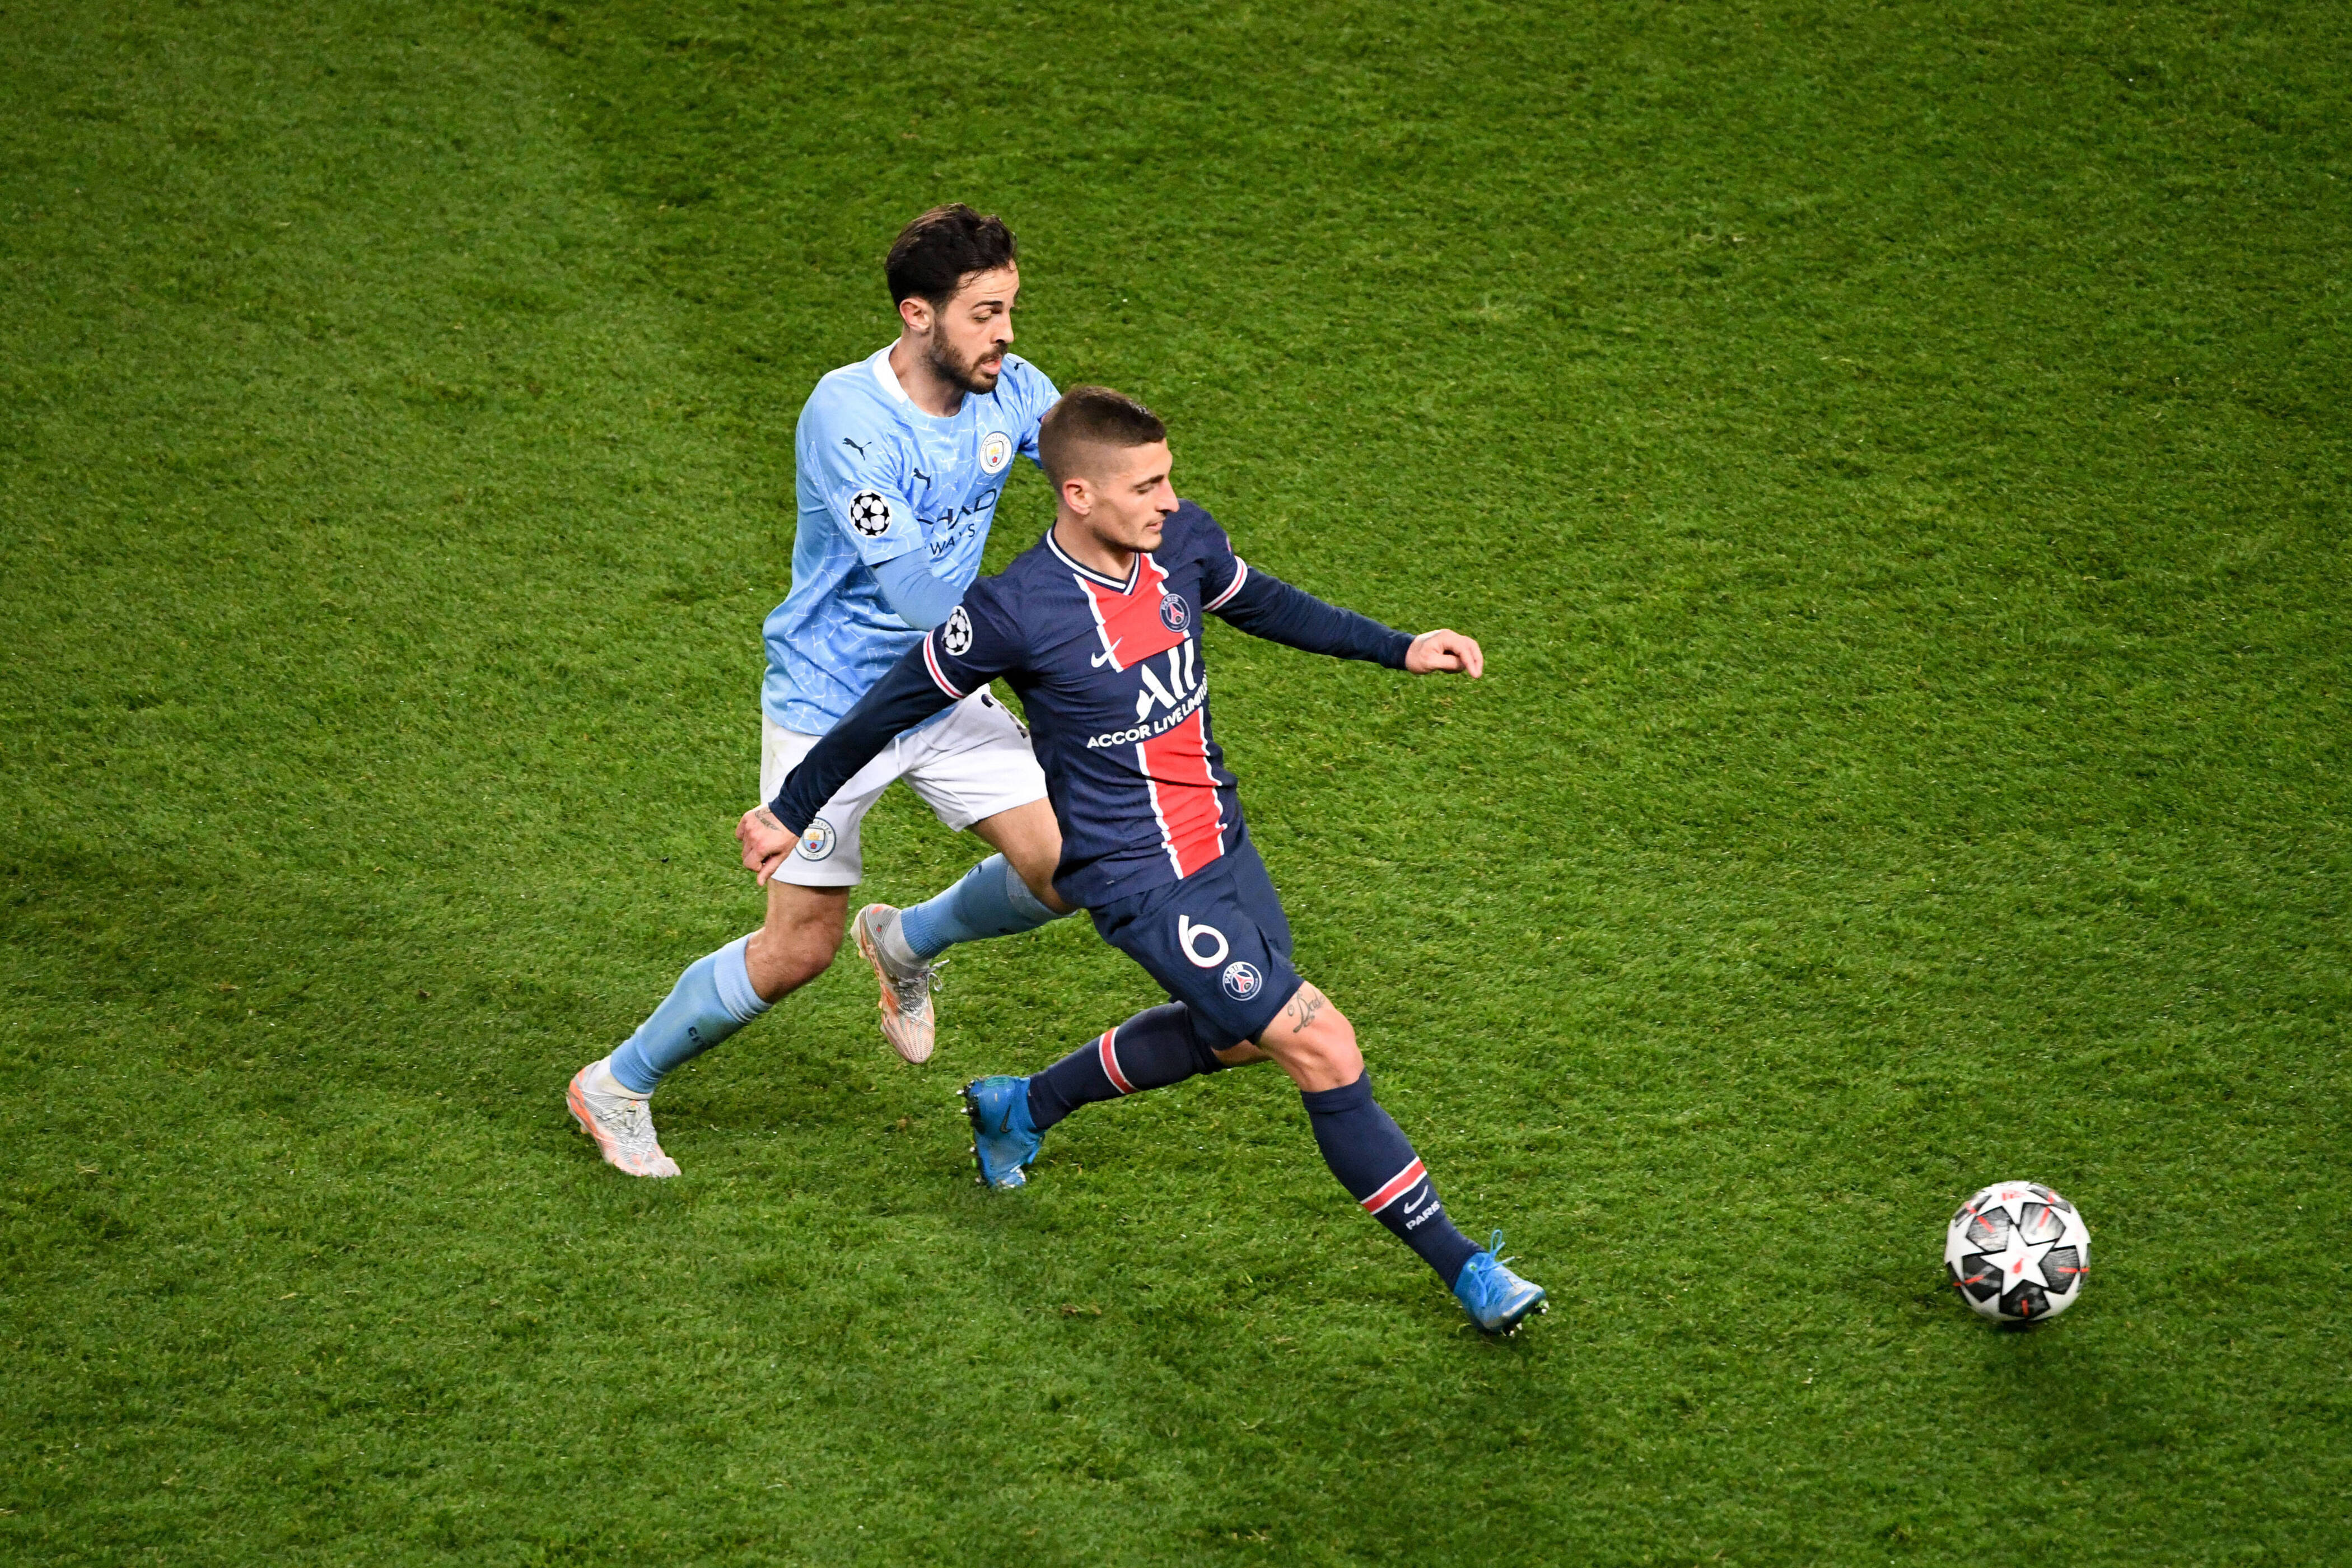 Video: 'We Know We Have Nothing to Lose' - Marco Verratti on PSG's  Mentality Ahead of Champions League Clash Against Man City - PSG Talk